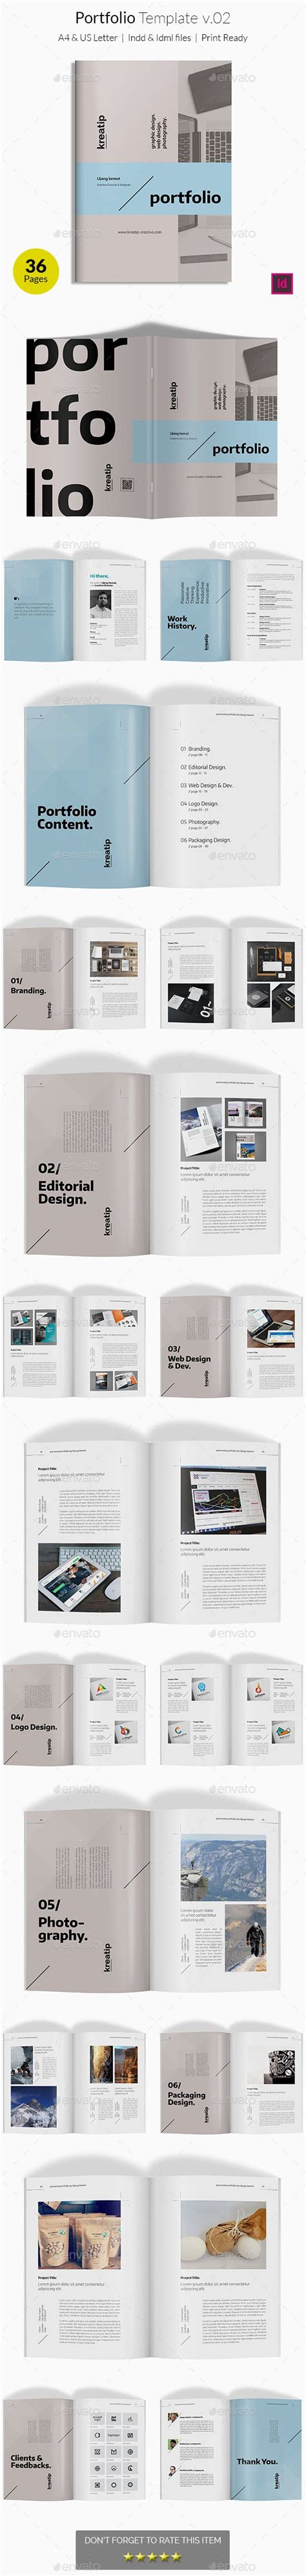 21157 resume portfolio template 25 best ideas about booklet template on